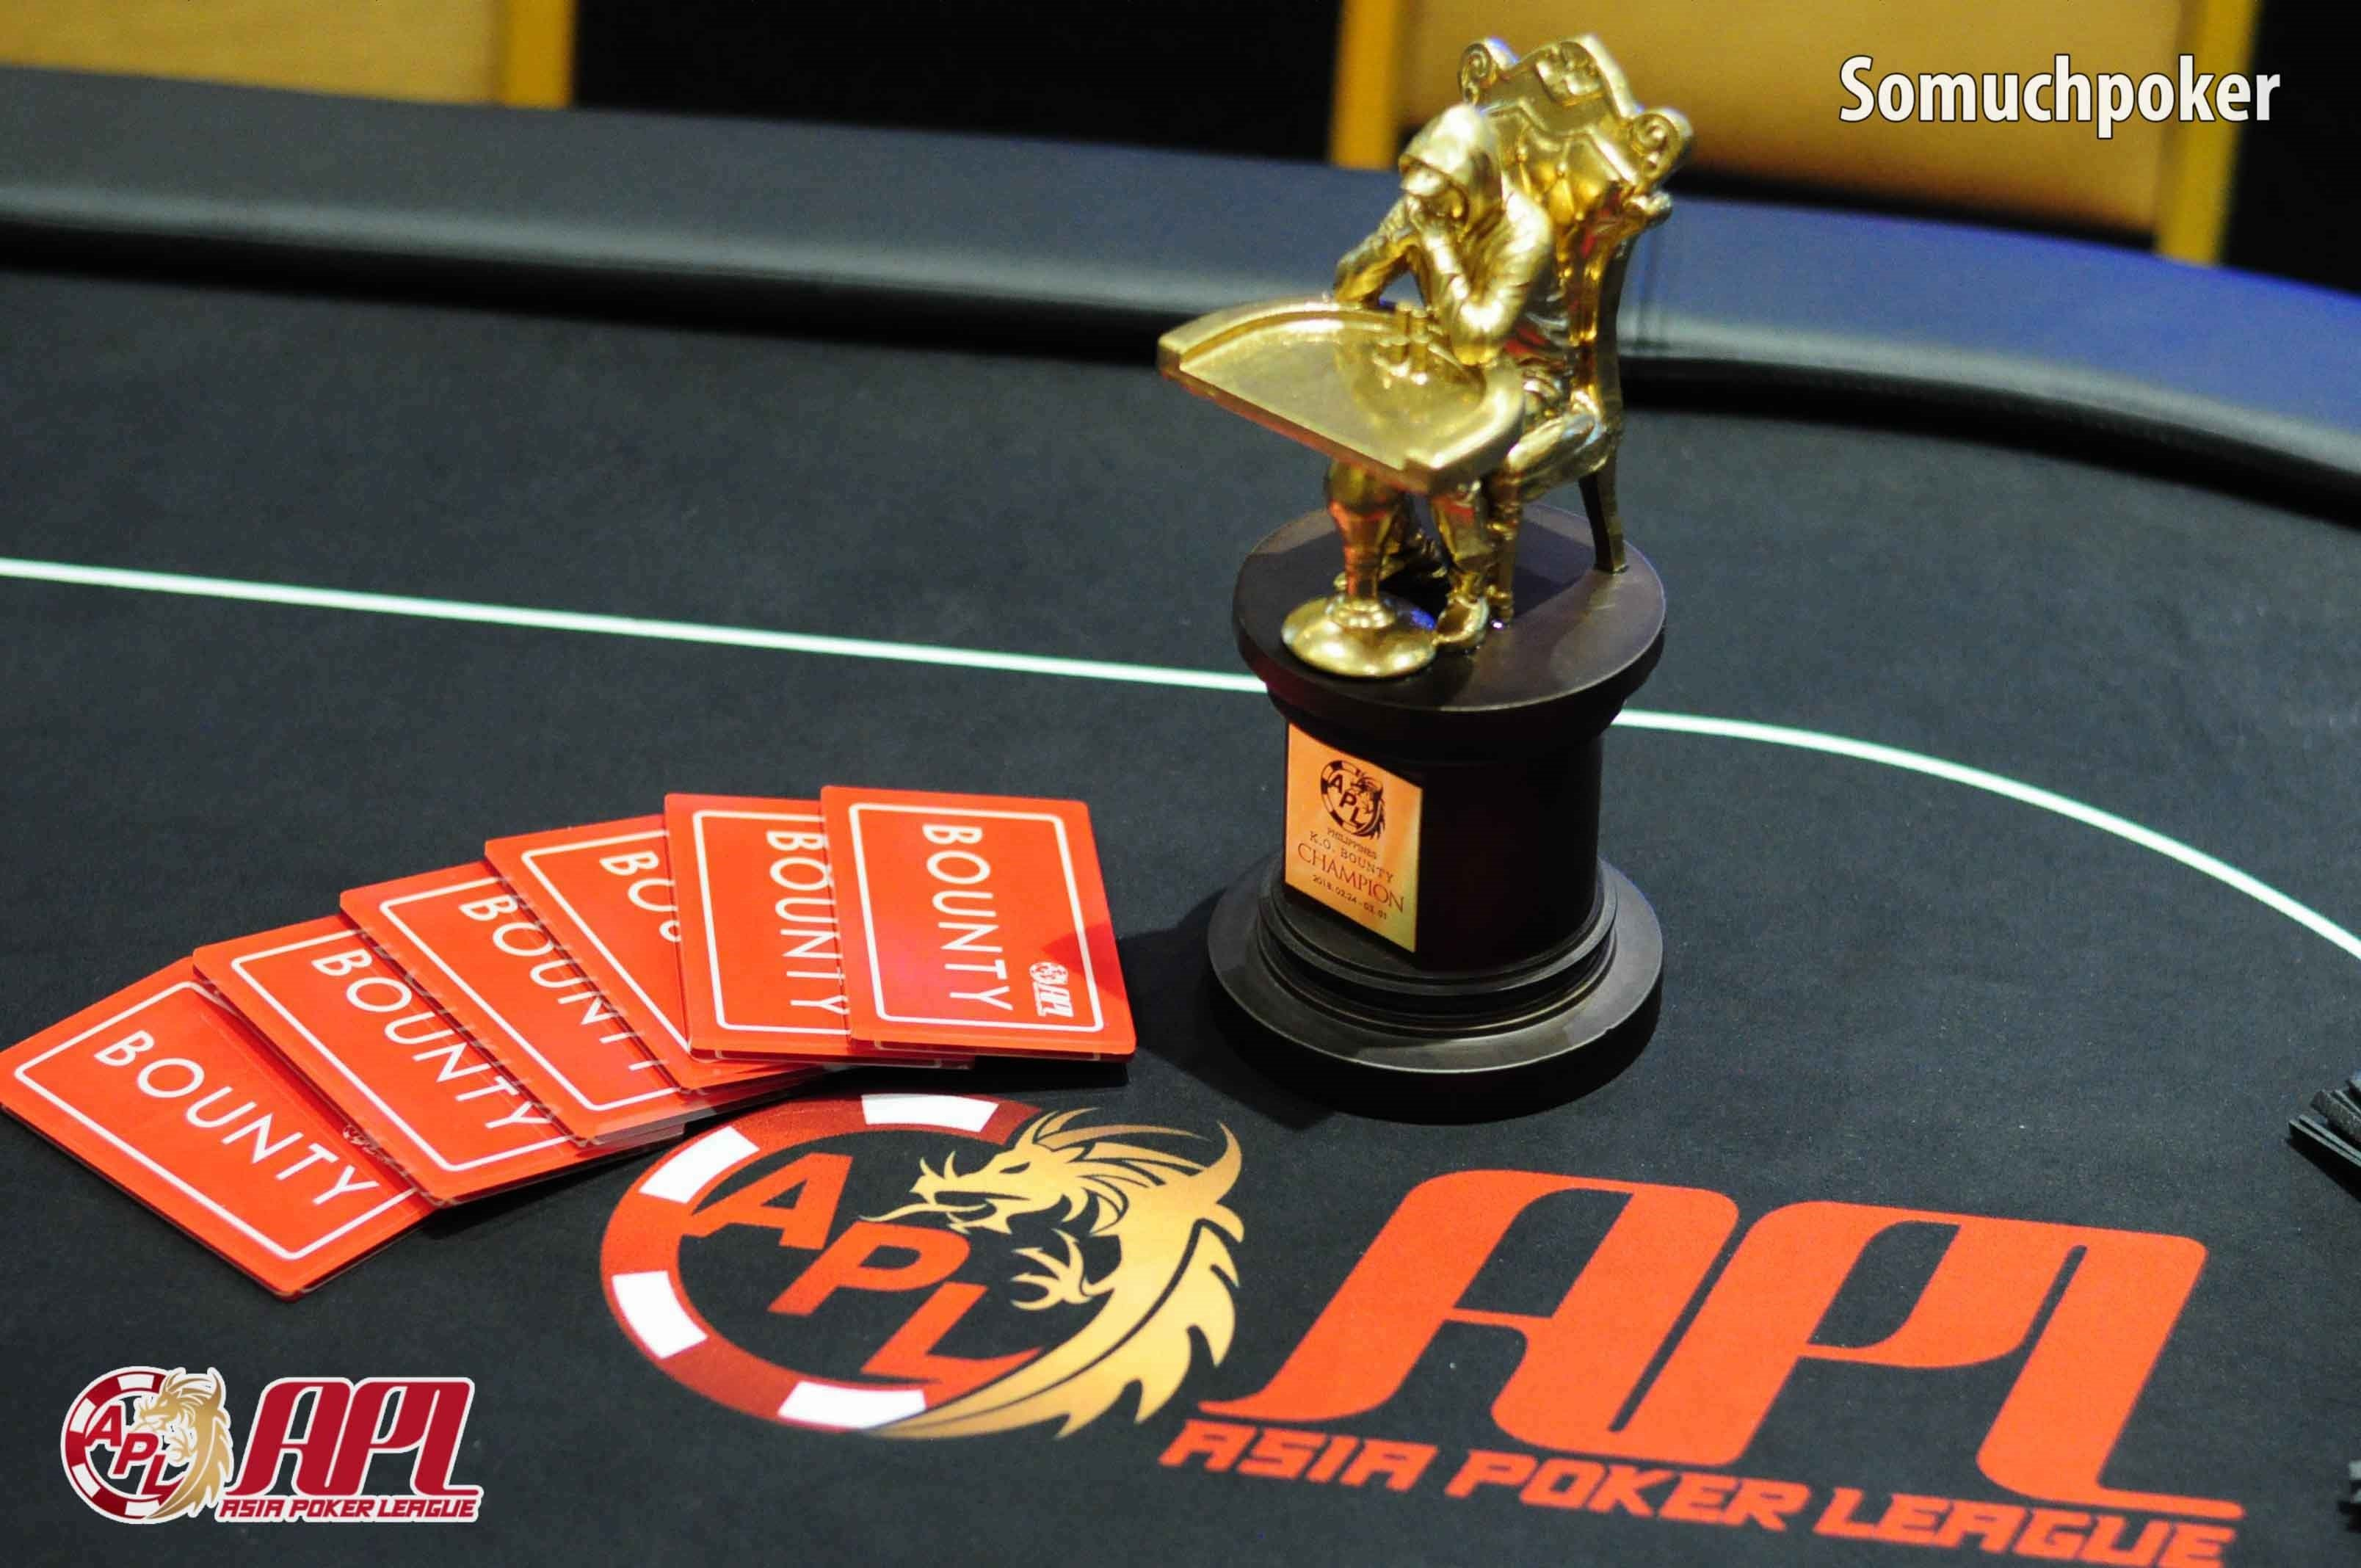 The Apl Asia Poker League Announces A 5 Billion Vnd Gtd Main Event In Vietnam Somuchpoker